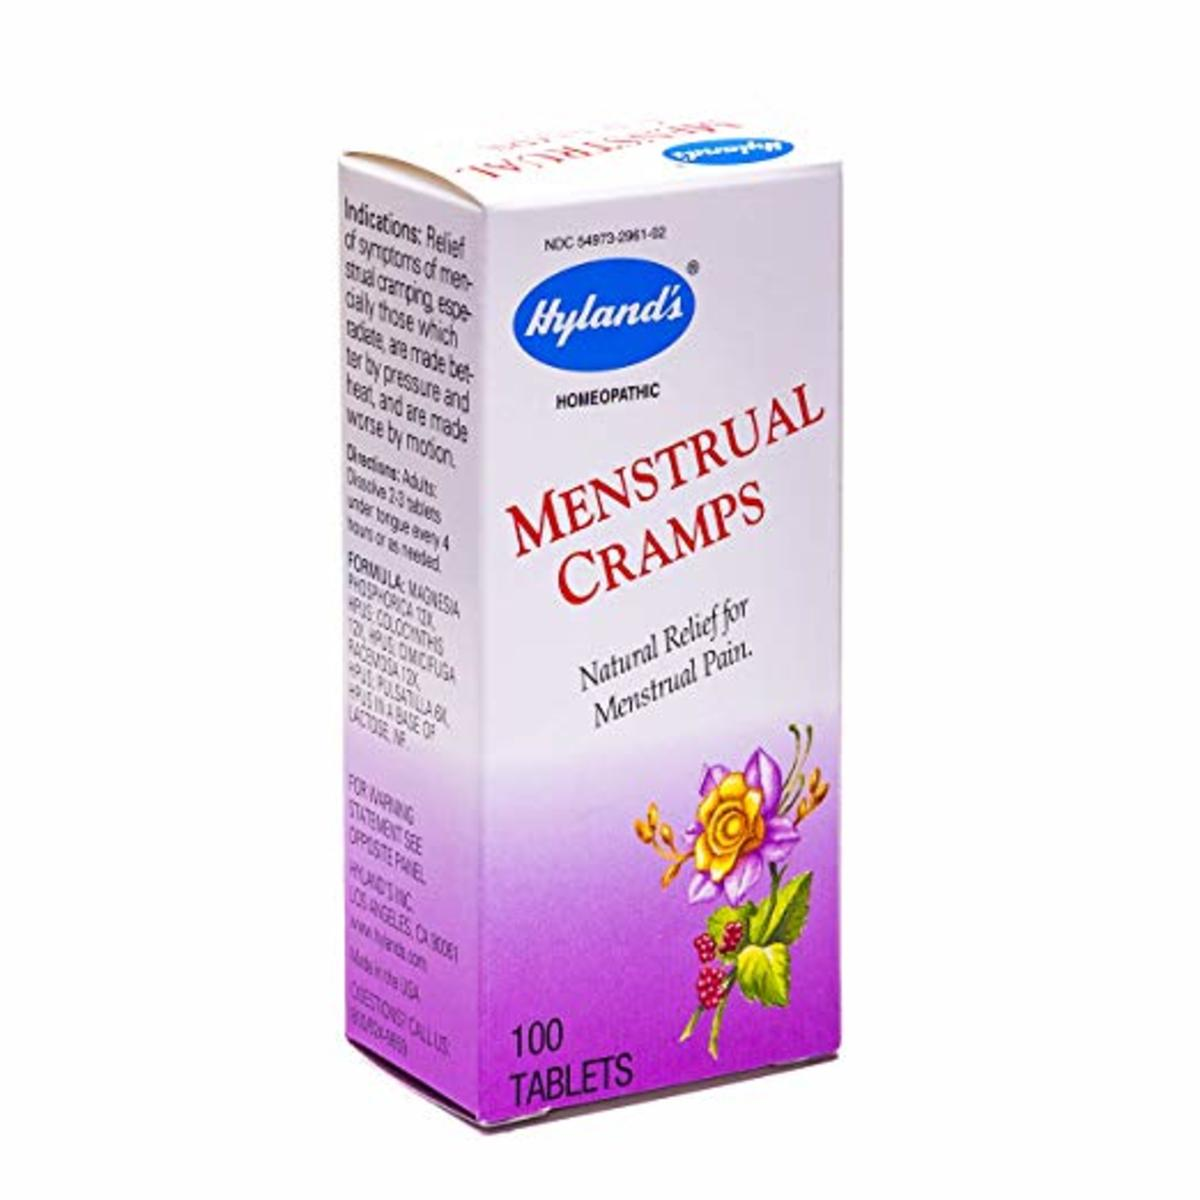 Hyland's Homeopathic Cramp Relief